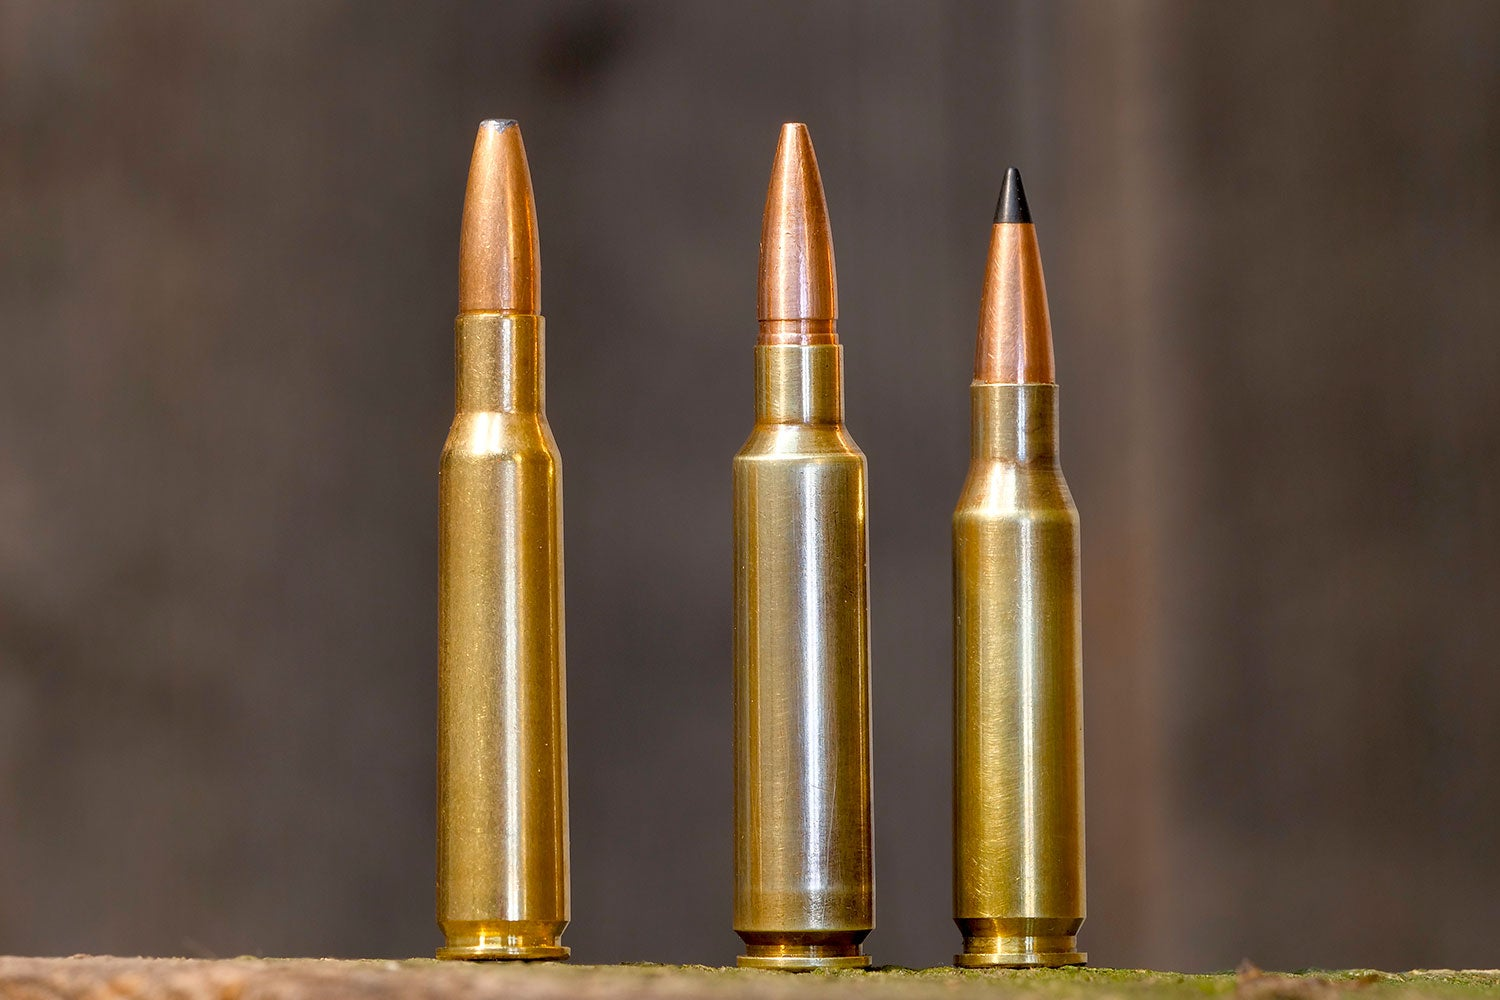 The 7x57, .284, and 7mm-08 sided by side by side.